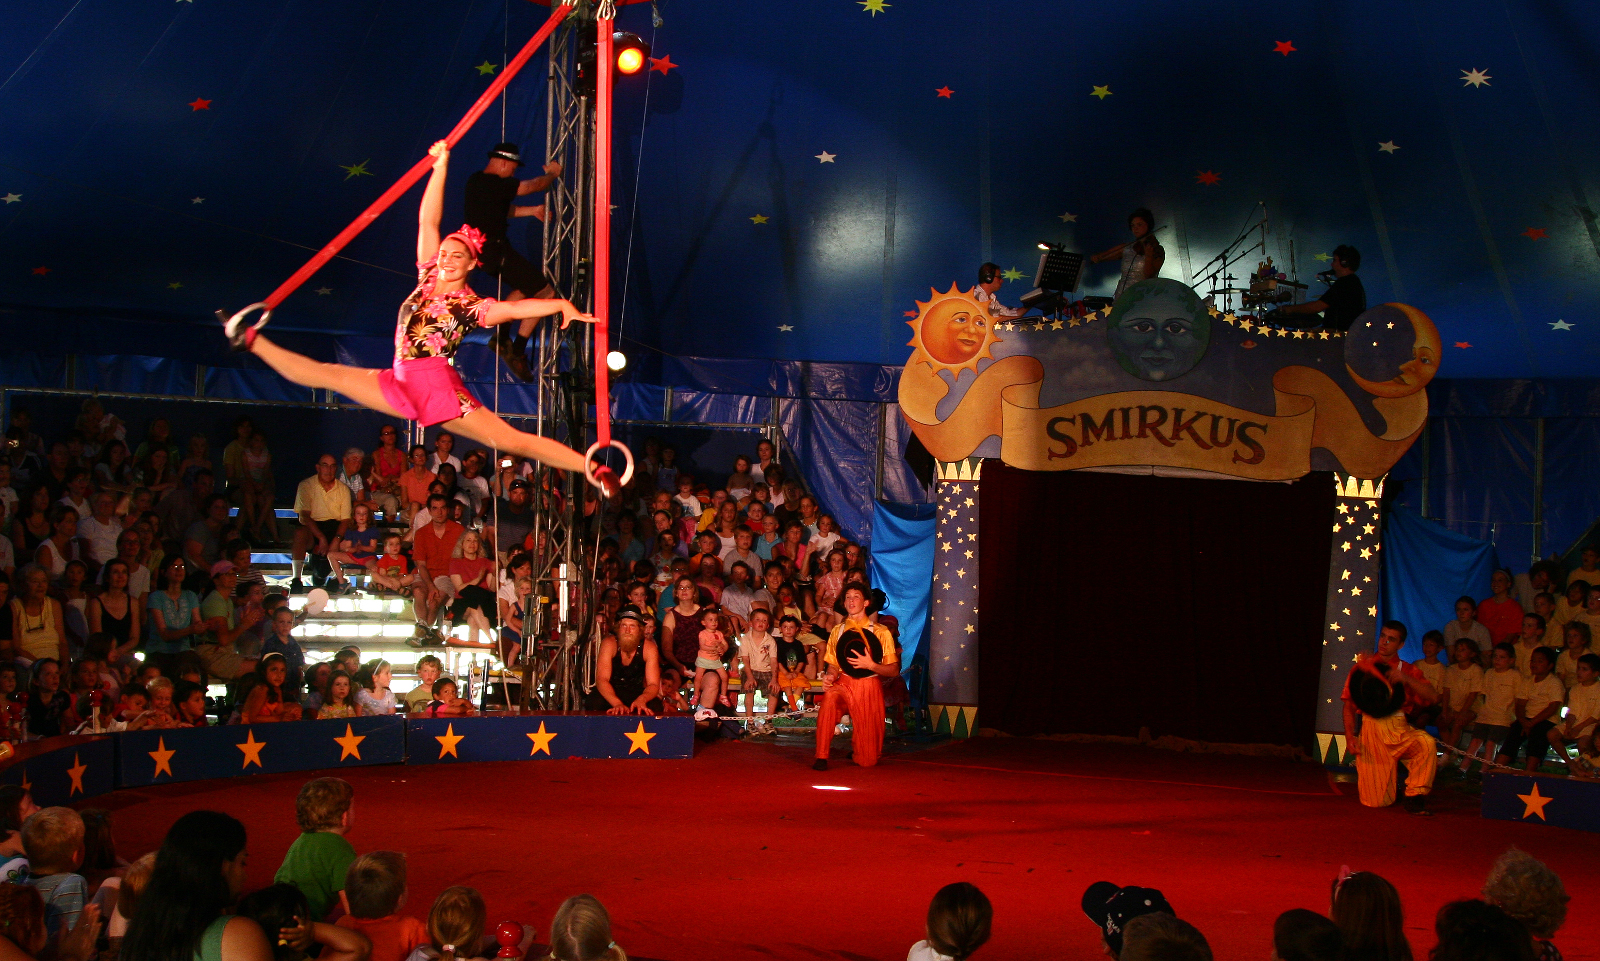 5 Cool Circuses That Don't Exploit Animals